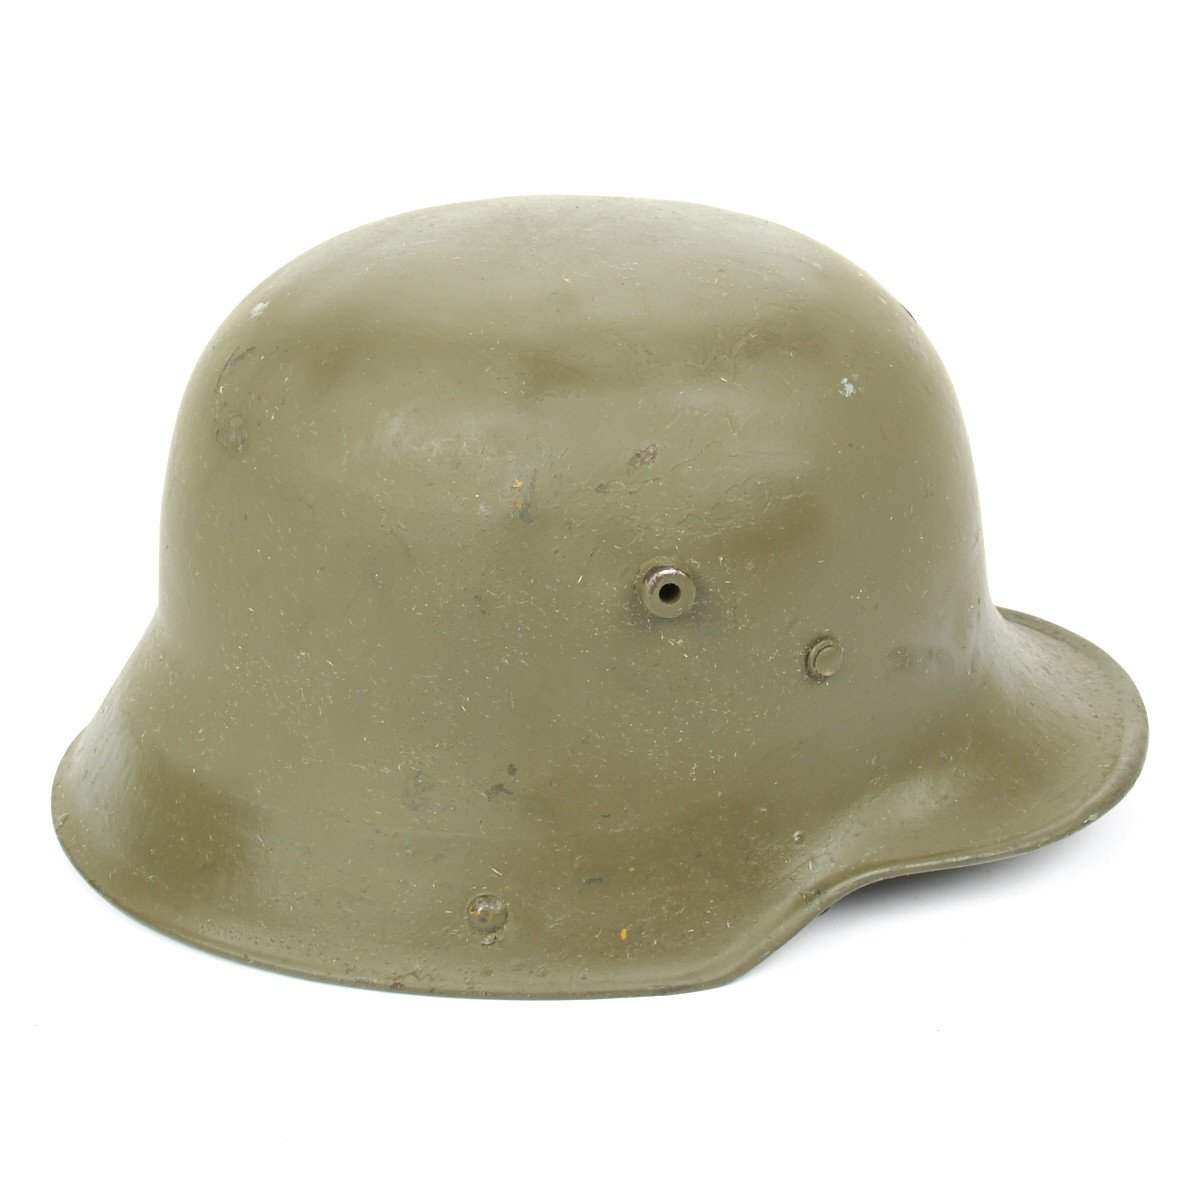 Original Imperial German WWI M16 Stahlhelm Helmet- Shell Size 66